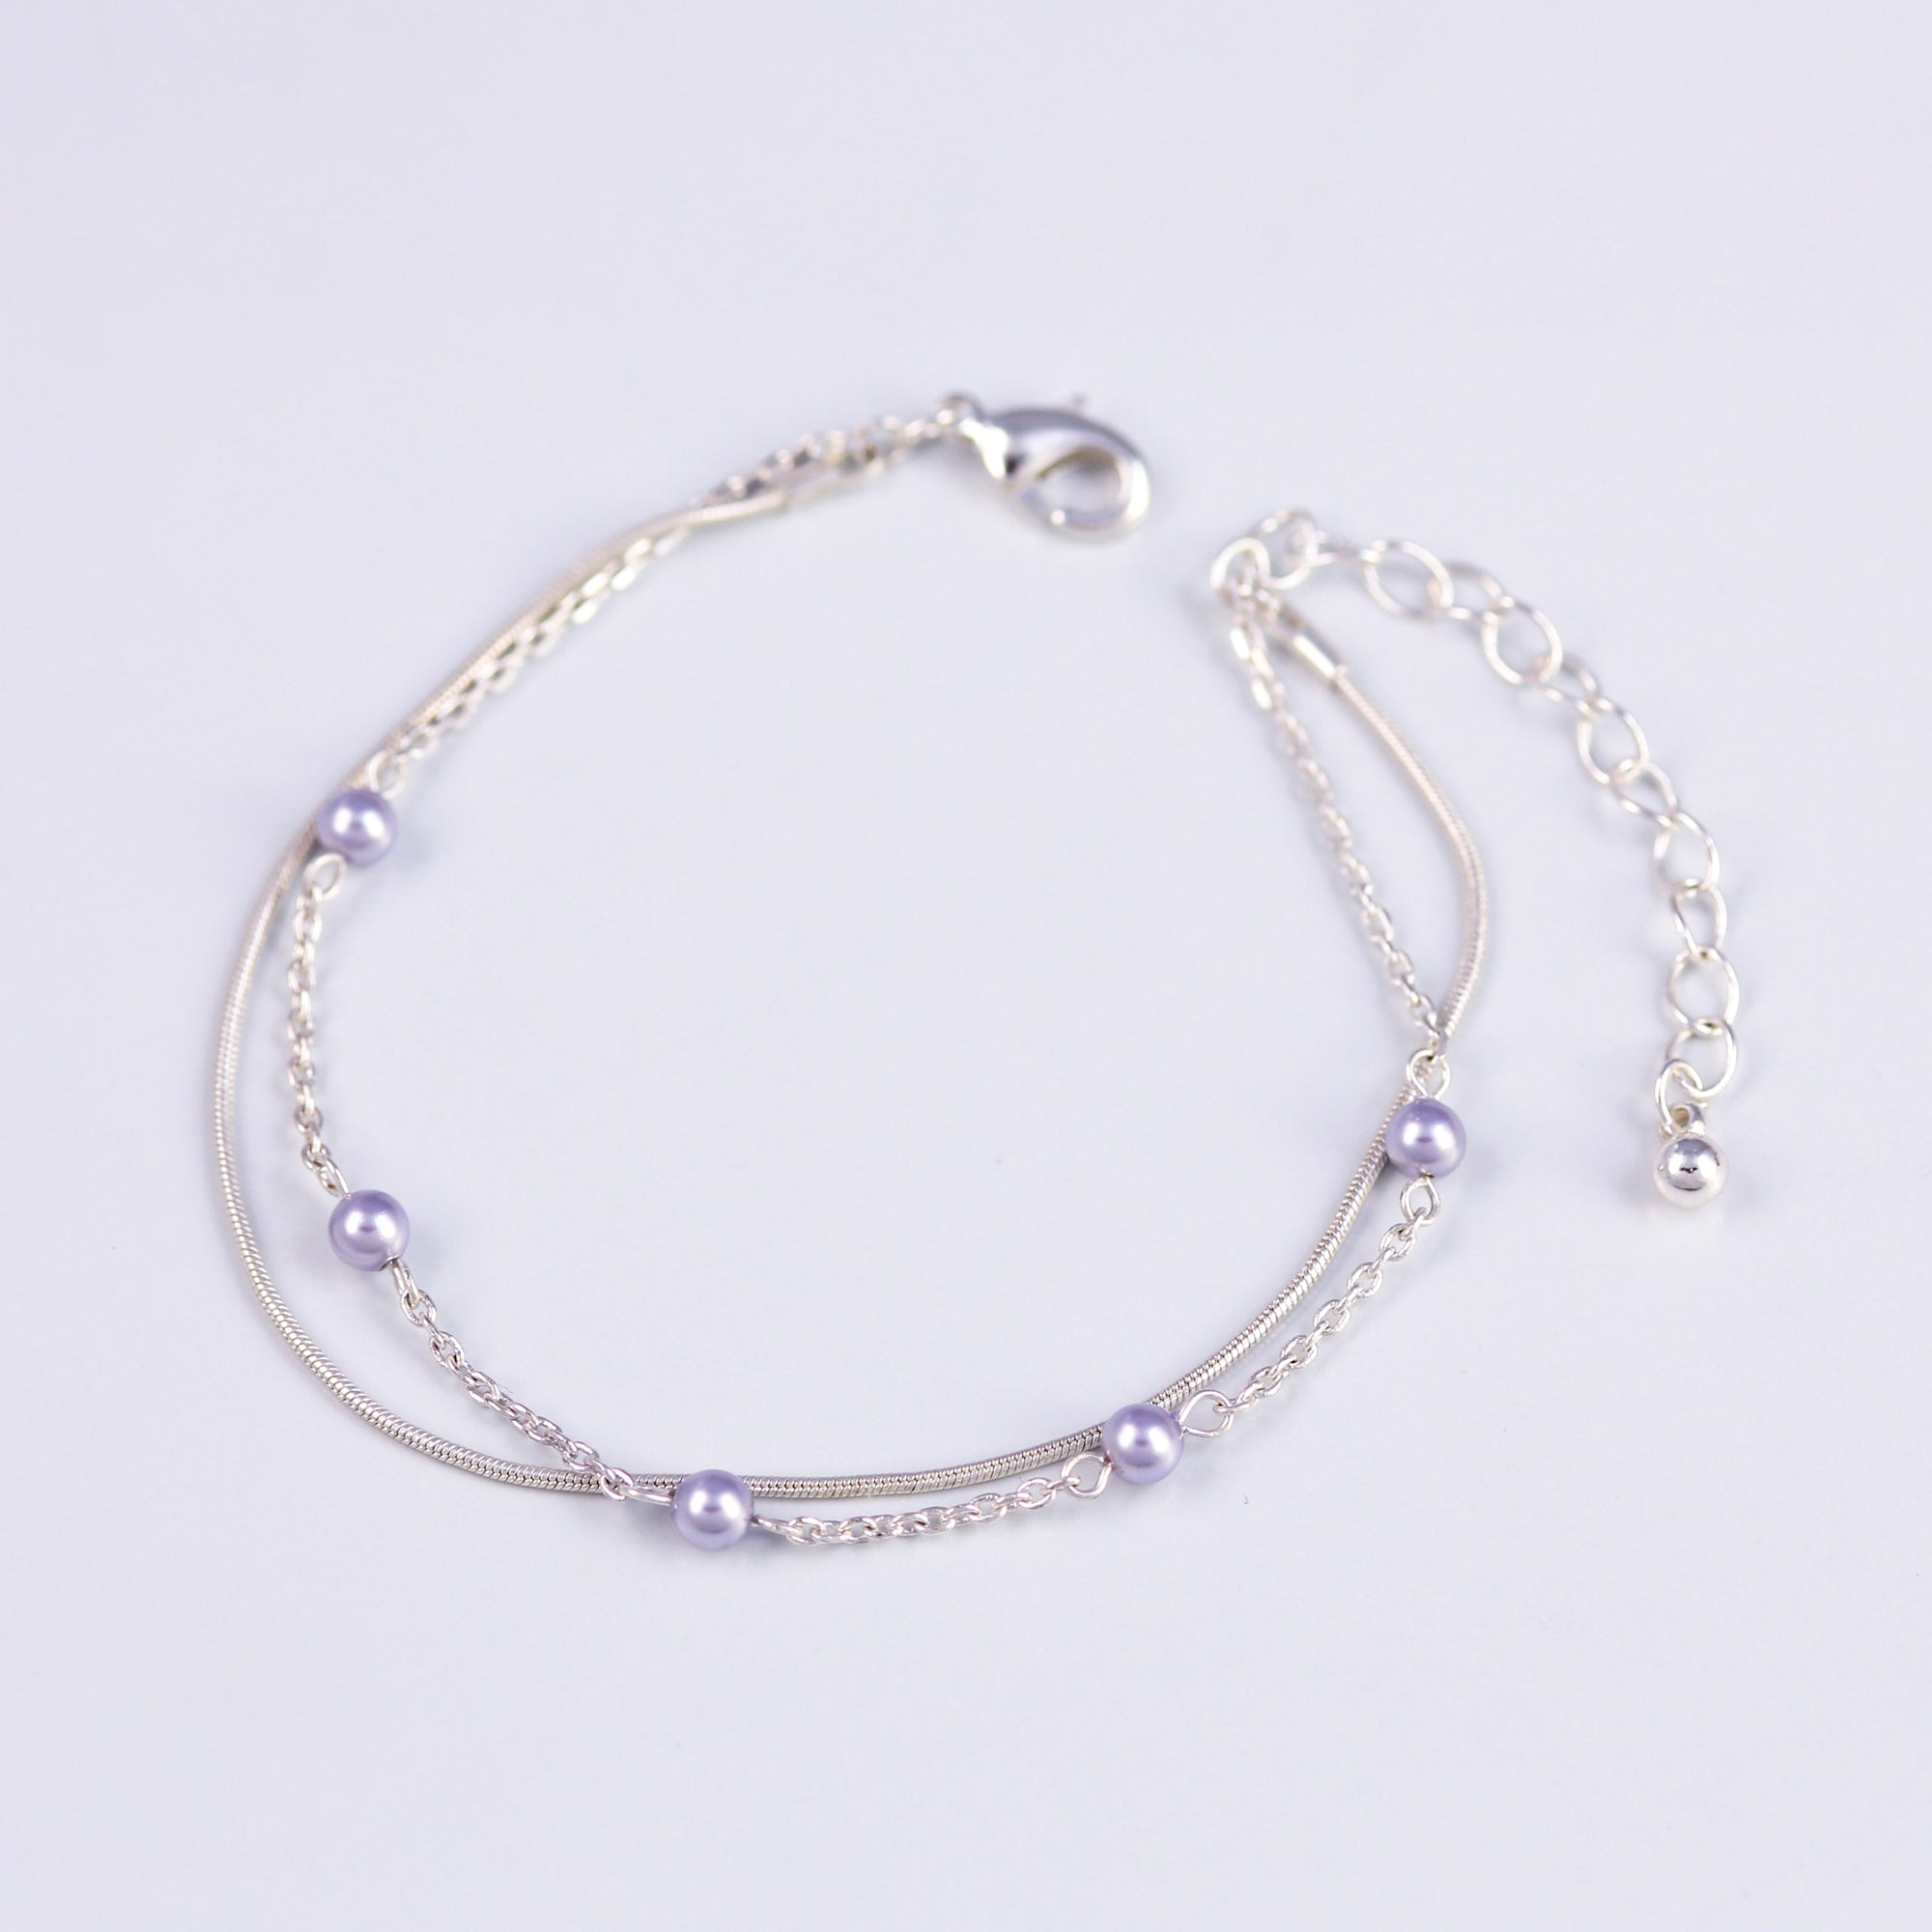 Delicate Silver Bracelet with Crystal Lilac Pearls